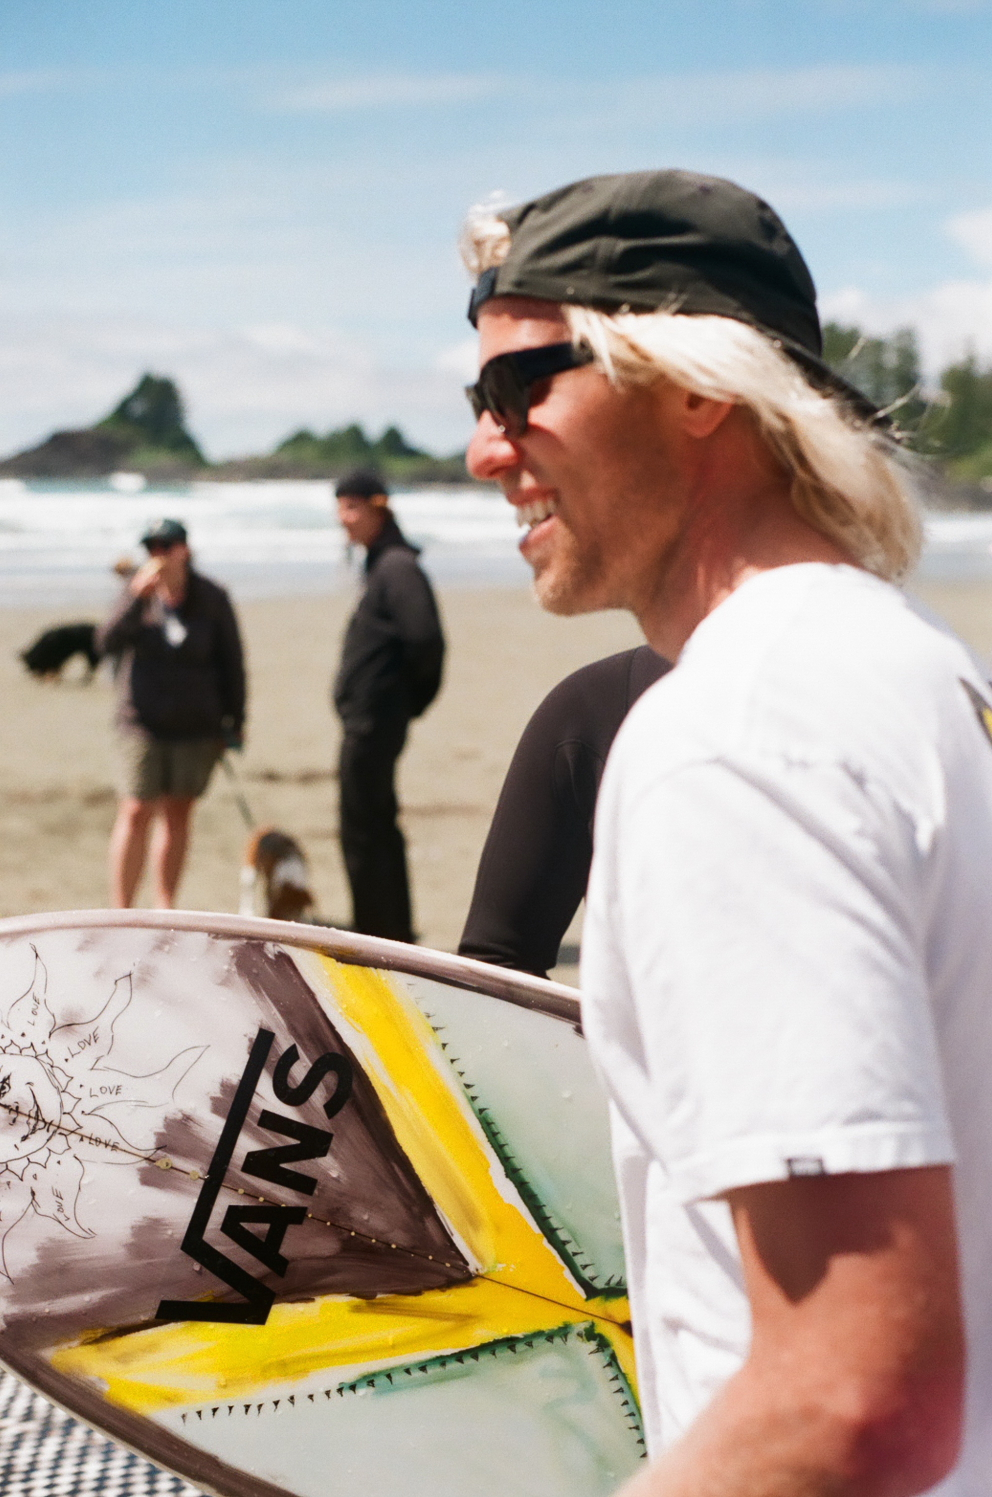 DISPATCH_STAYWILD_TOFINO23.JPG